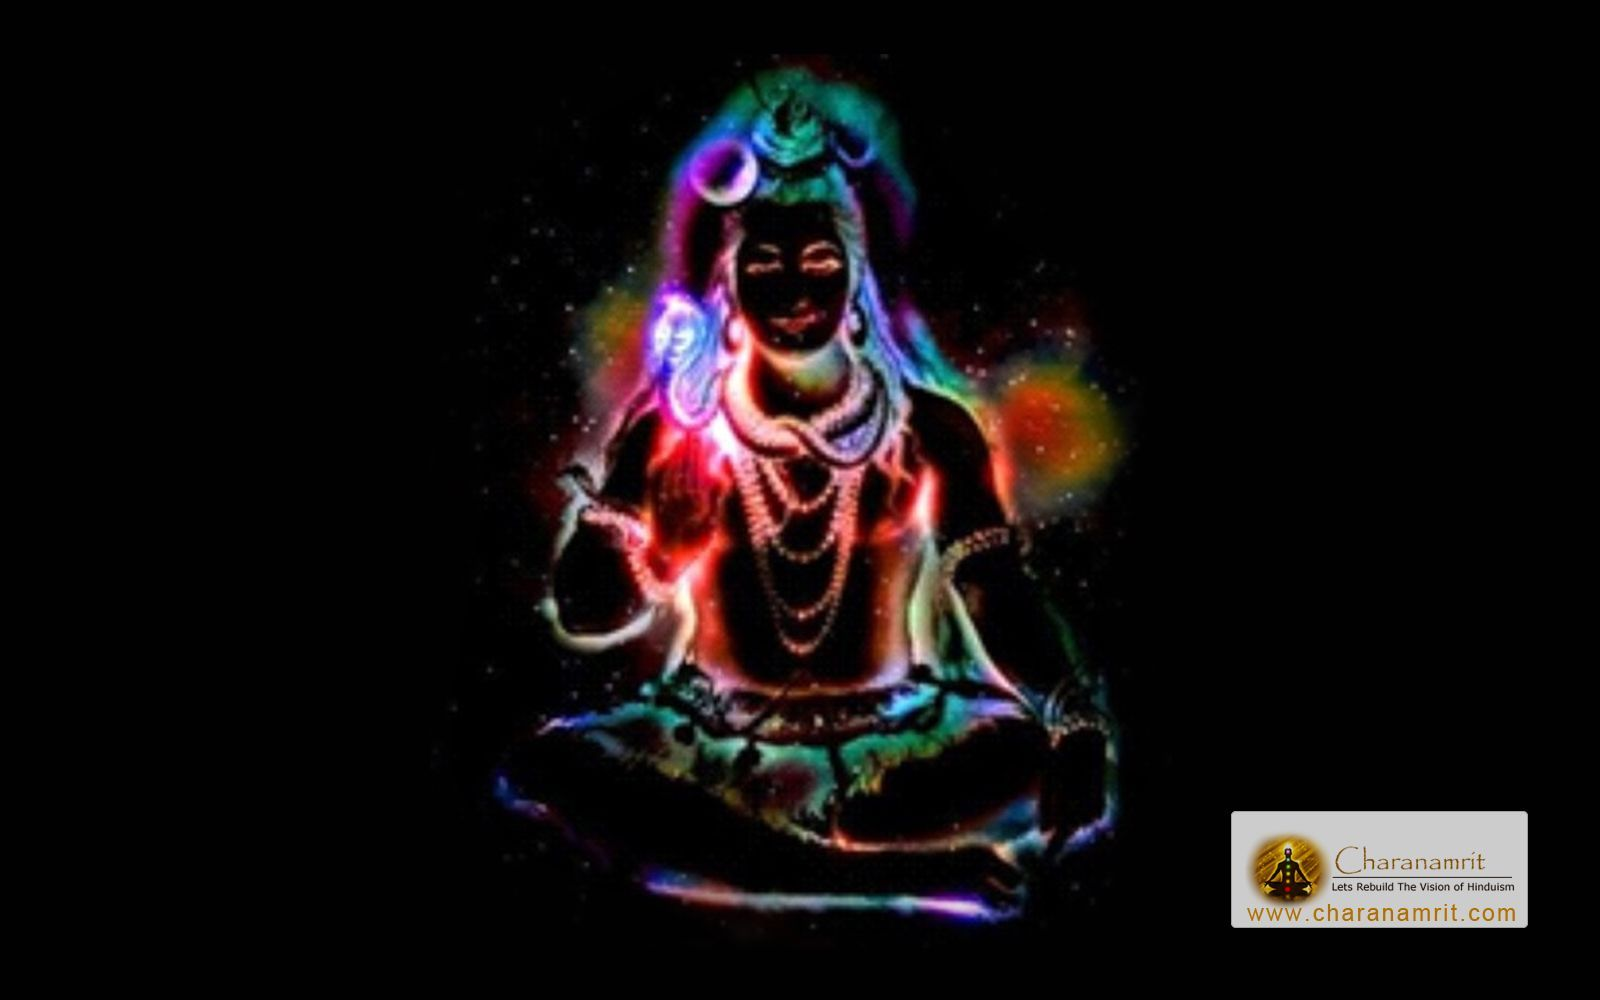 Lord Shiva Colorful Lighting Effects Hd Wallpaper For Free